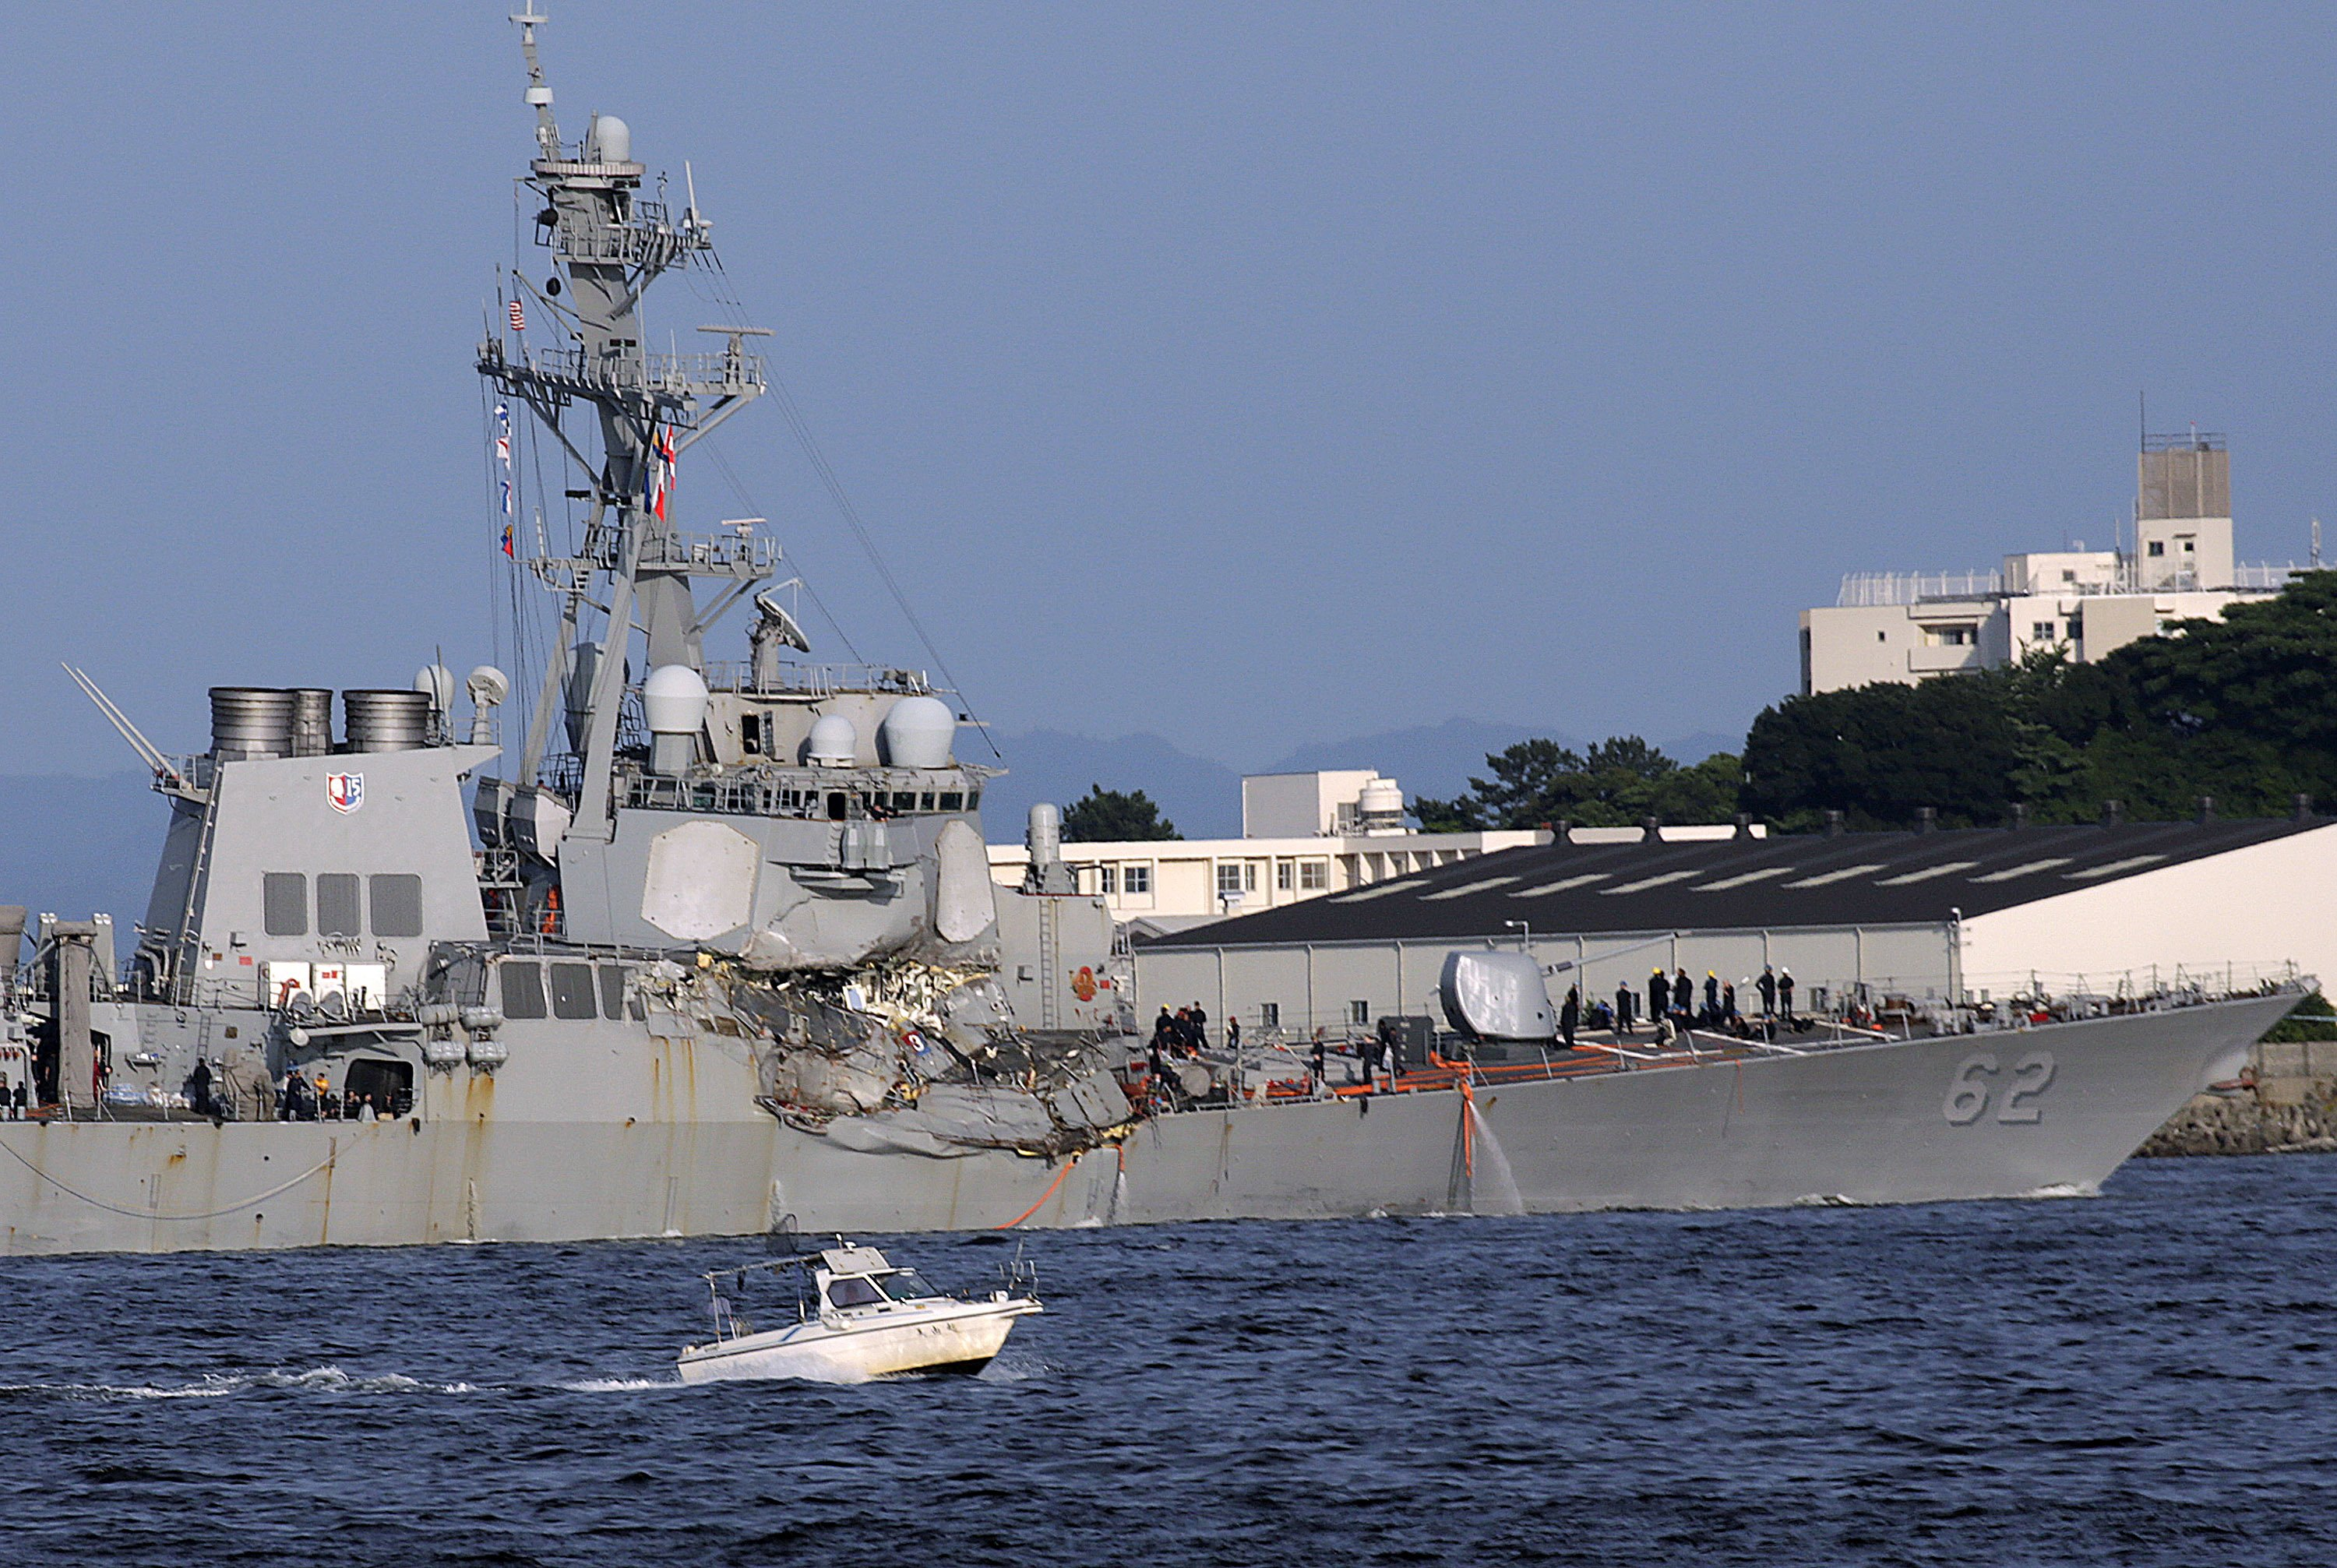 The Latest: US Navy says bodies of sailors found on ship